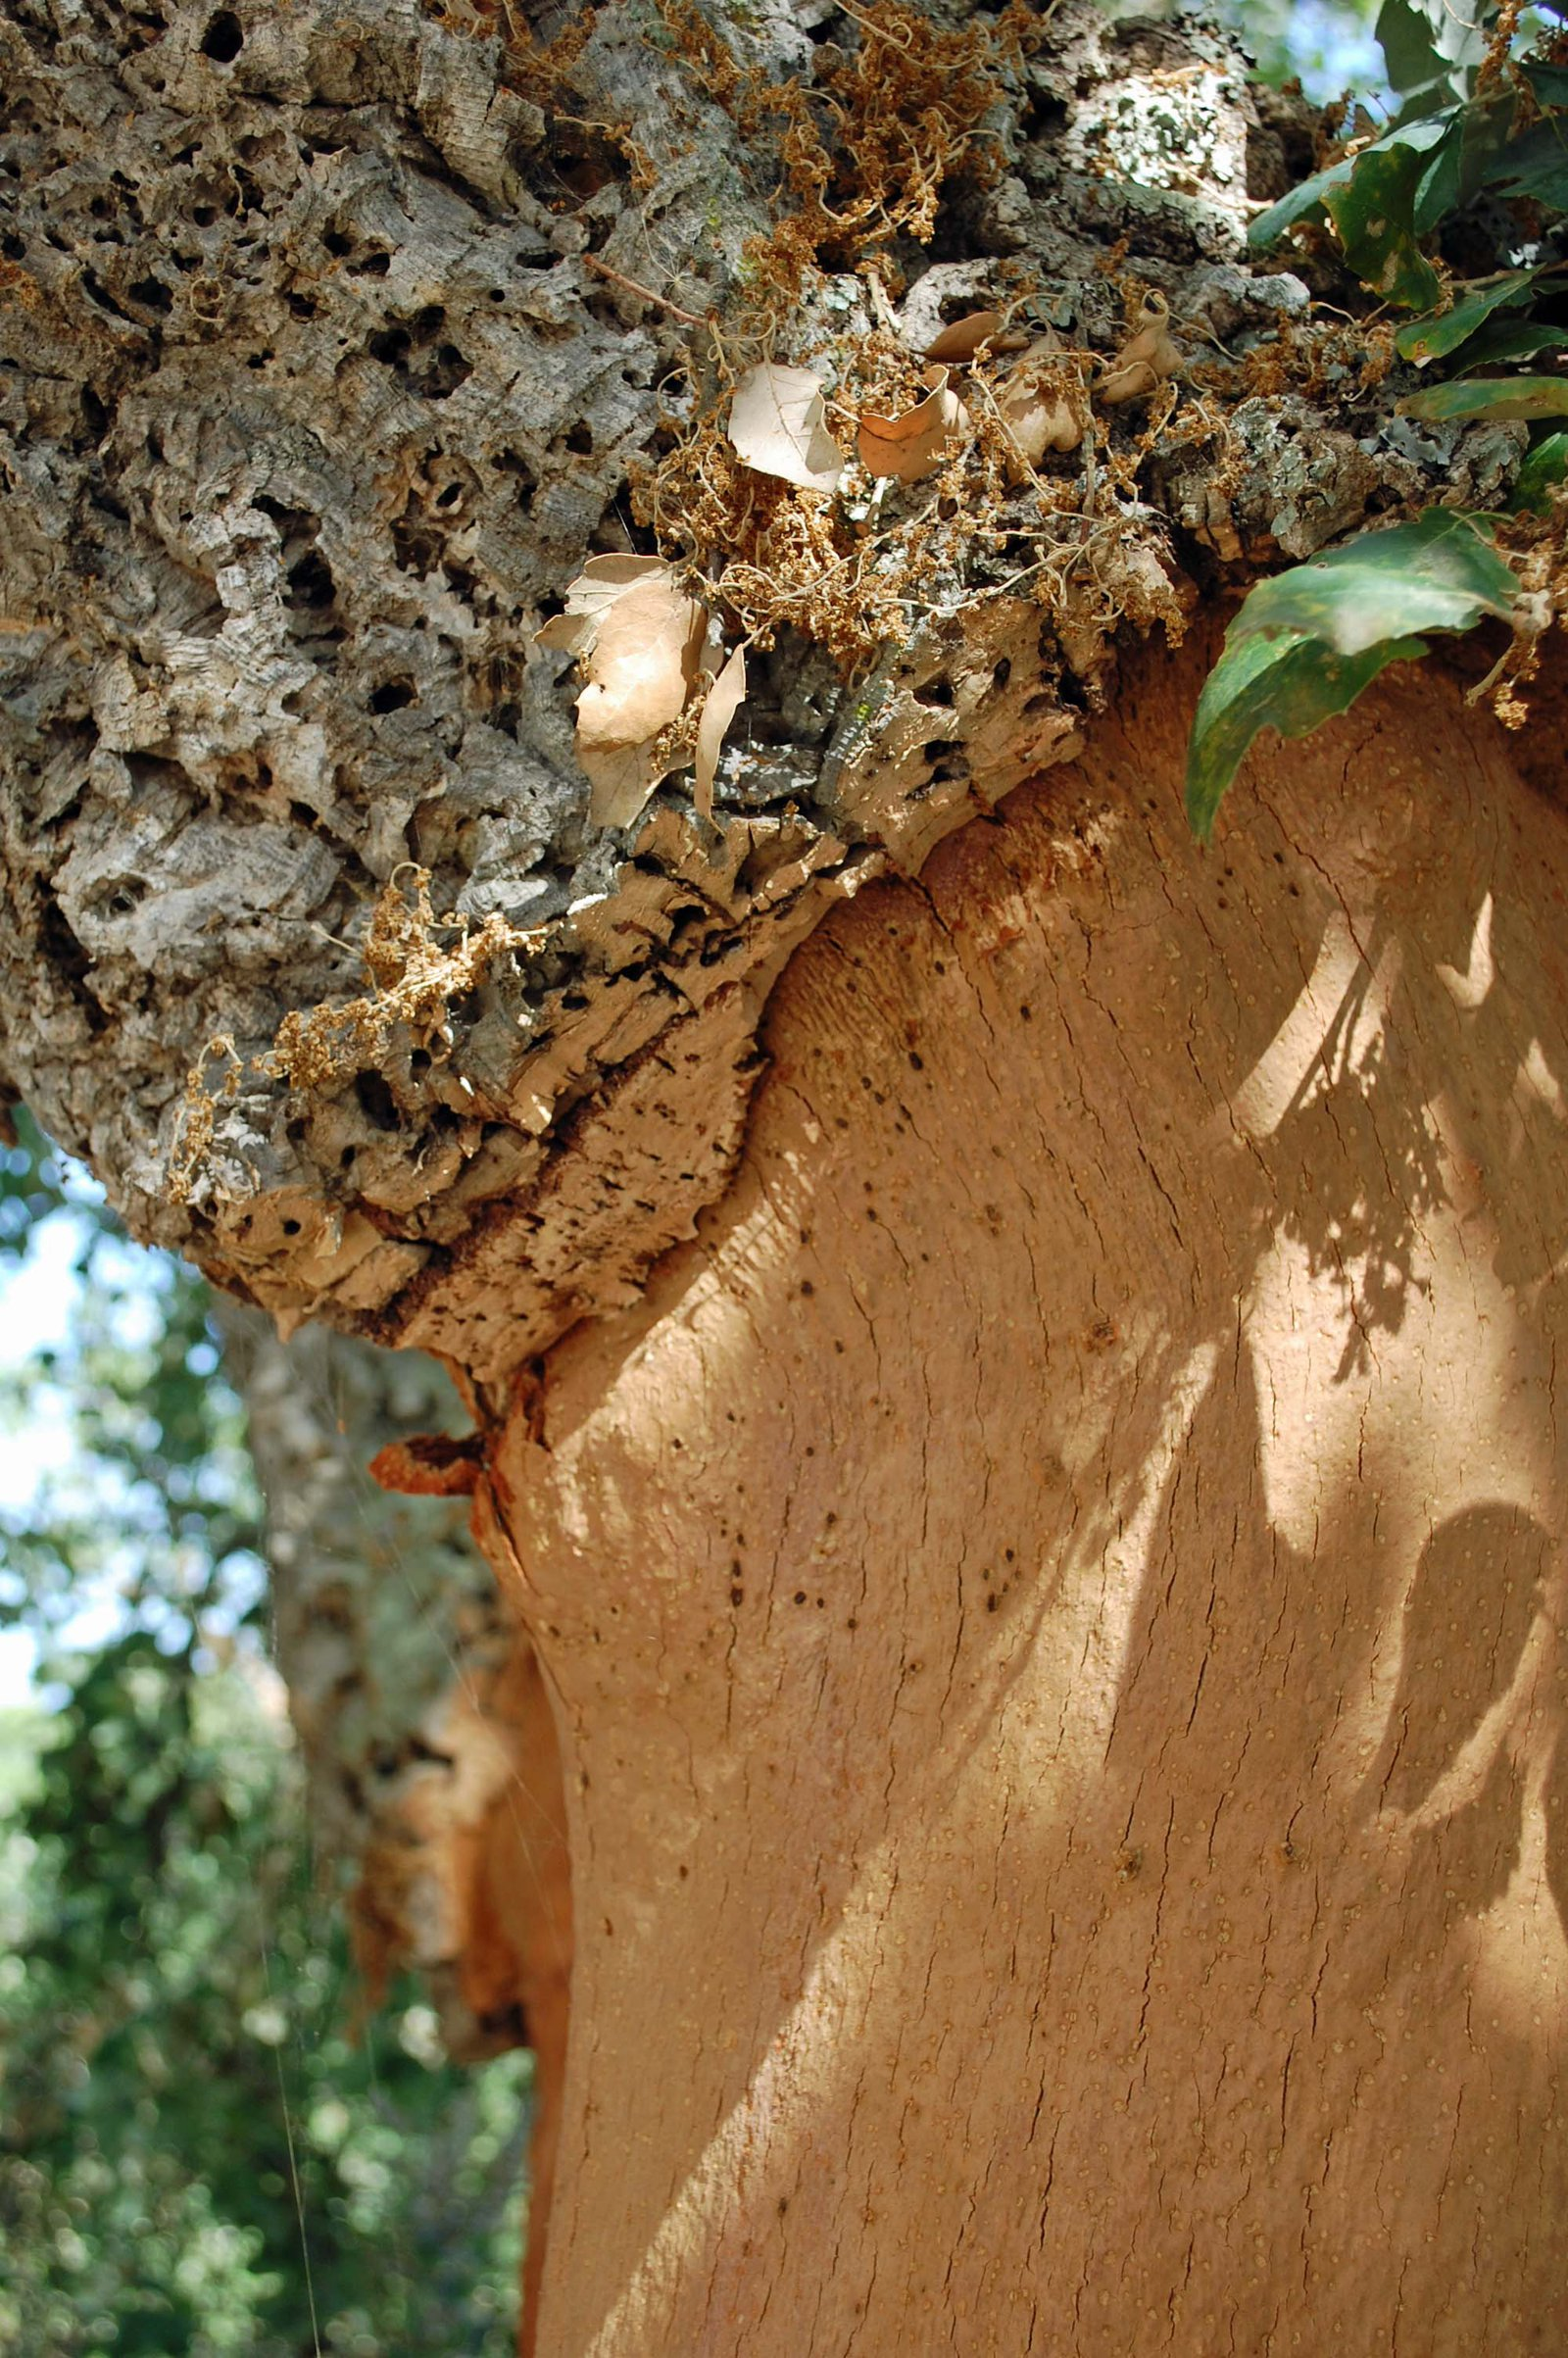 Bark growing on cork tree